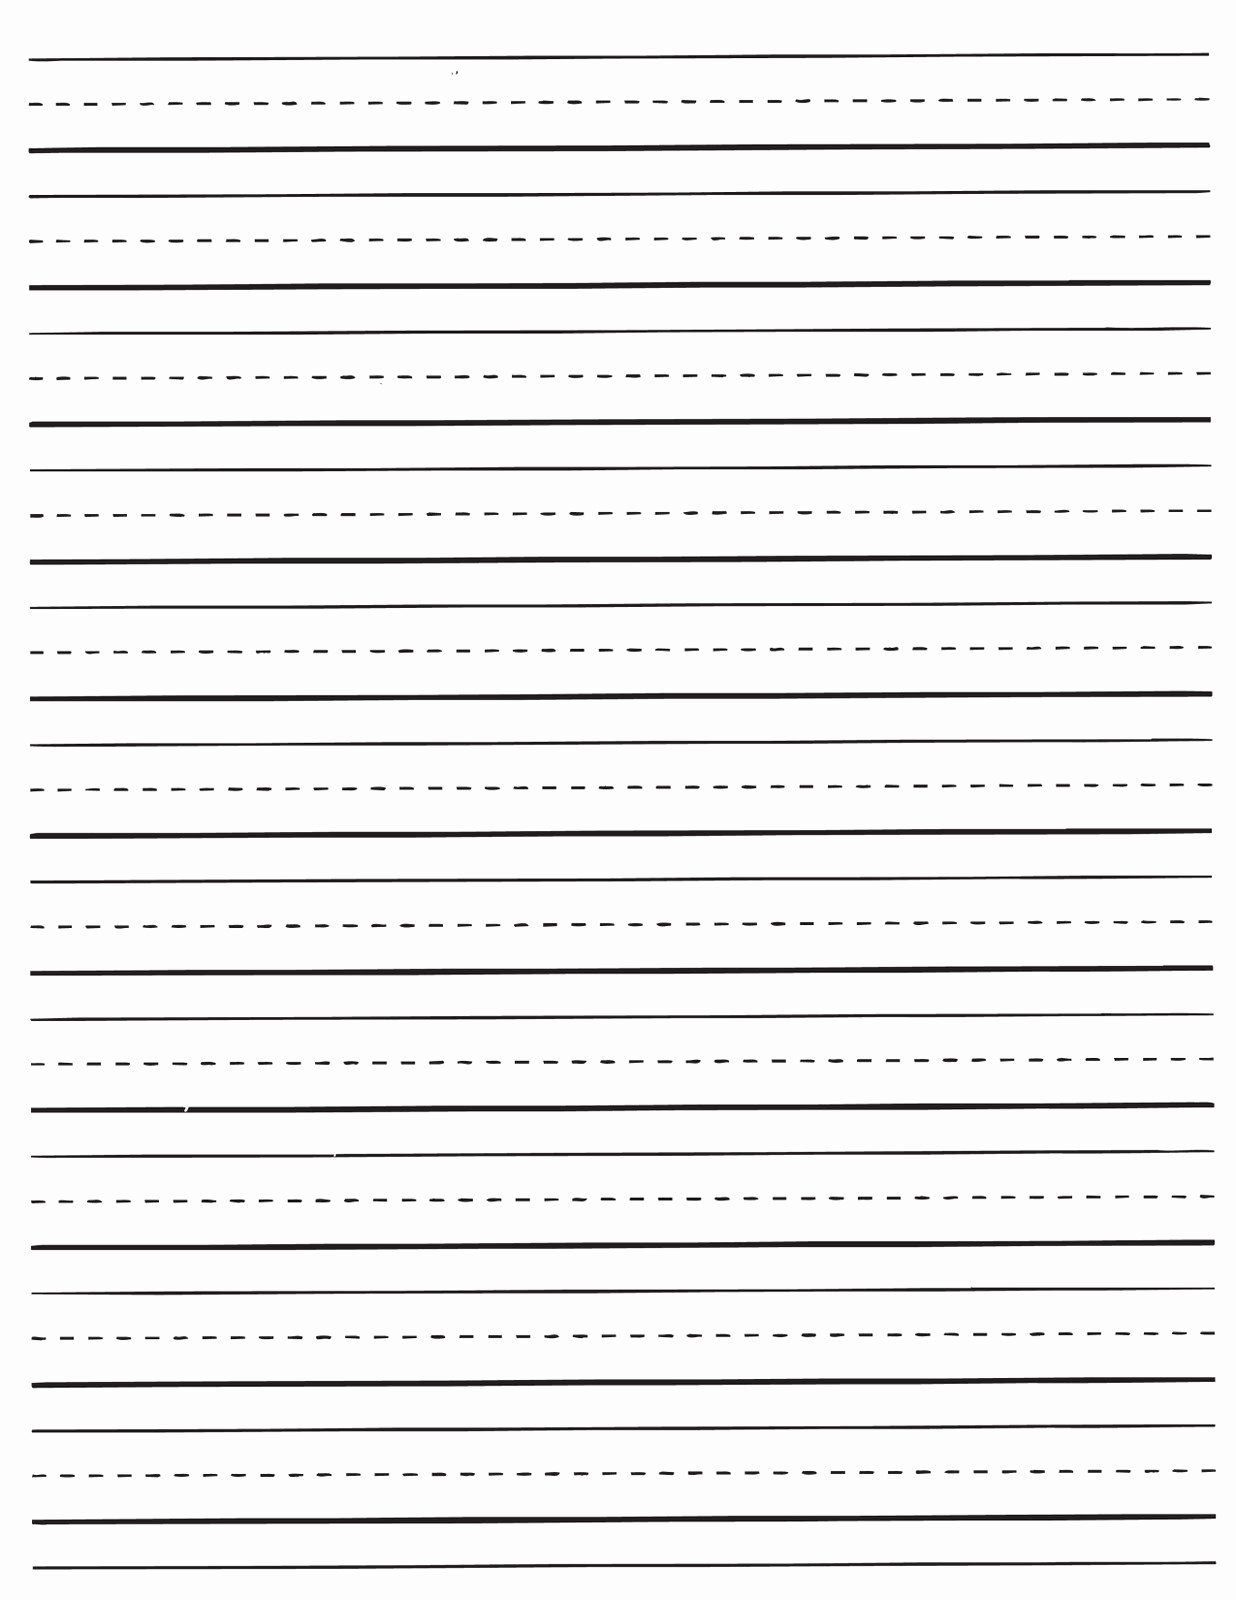 Free Printable Writing Paper Lovely Free Printable Lined Handwriting Paper Printable Pages